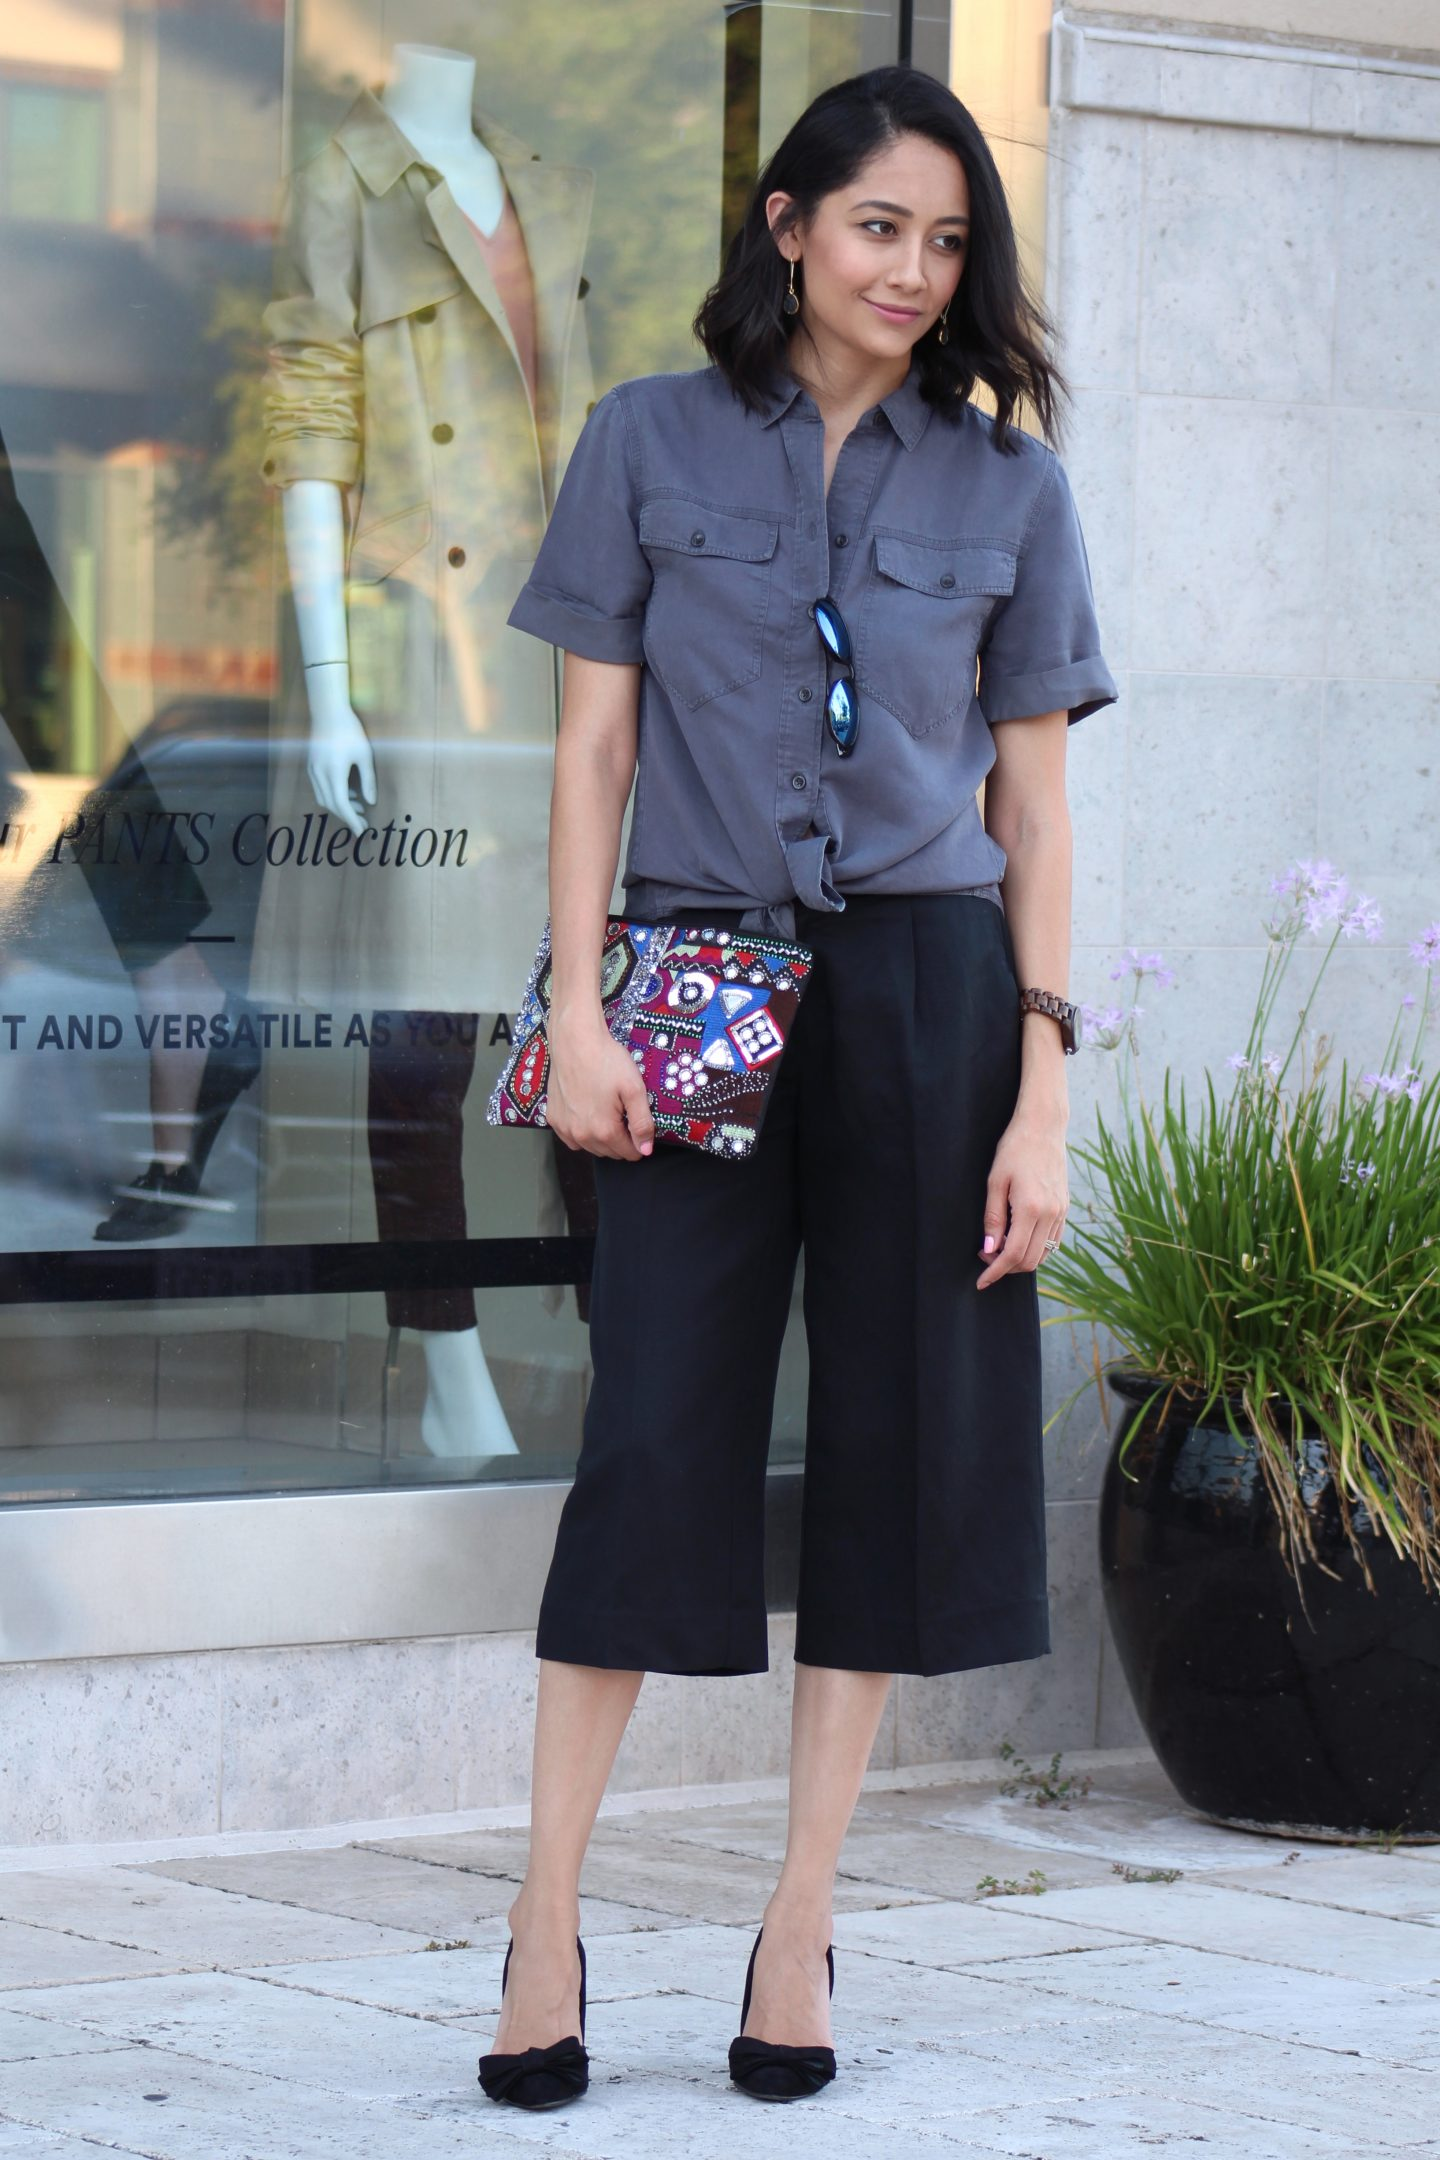 The Culottes Trend